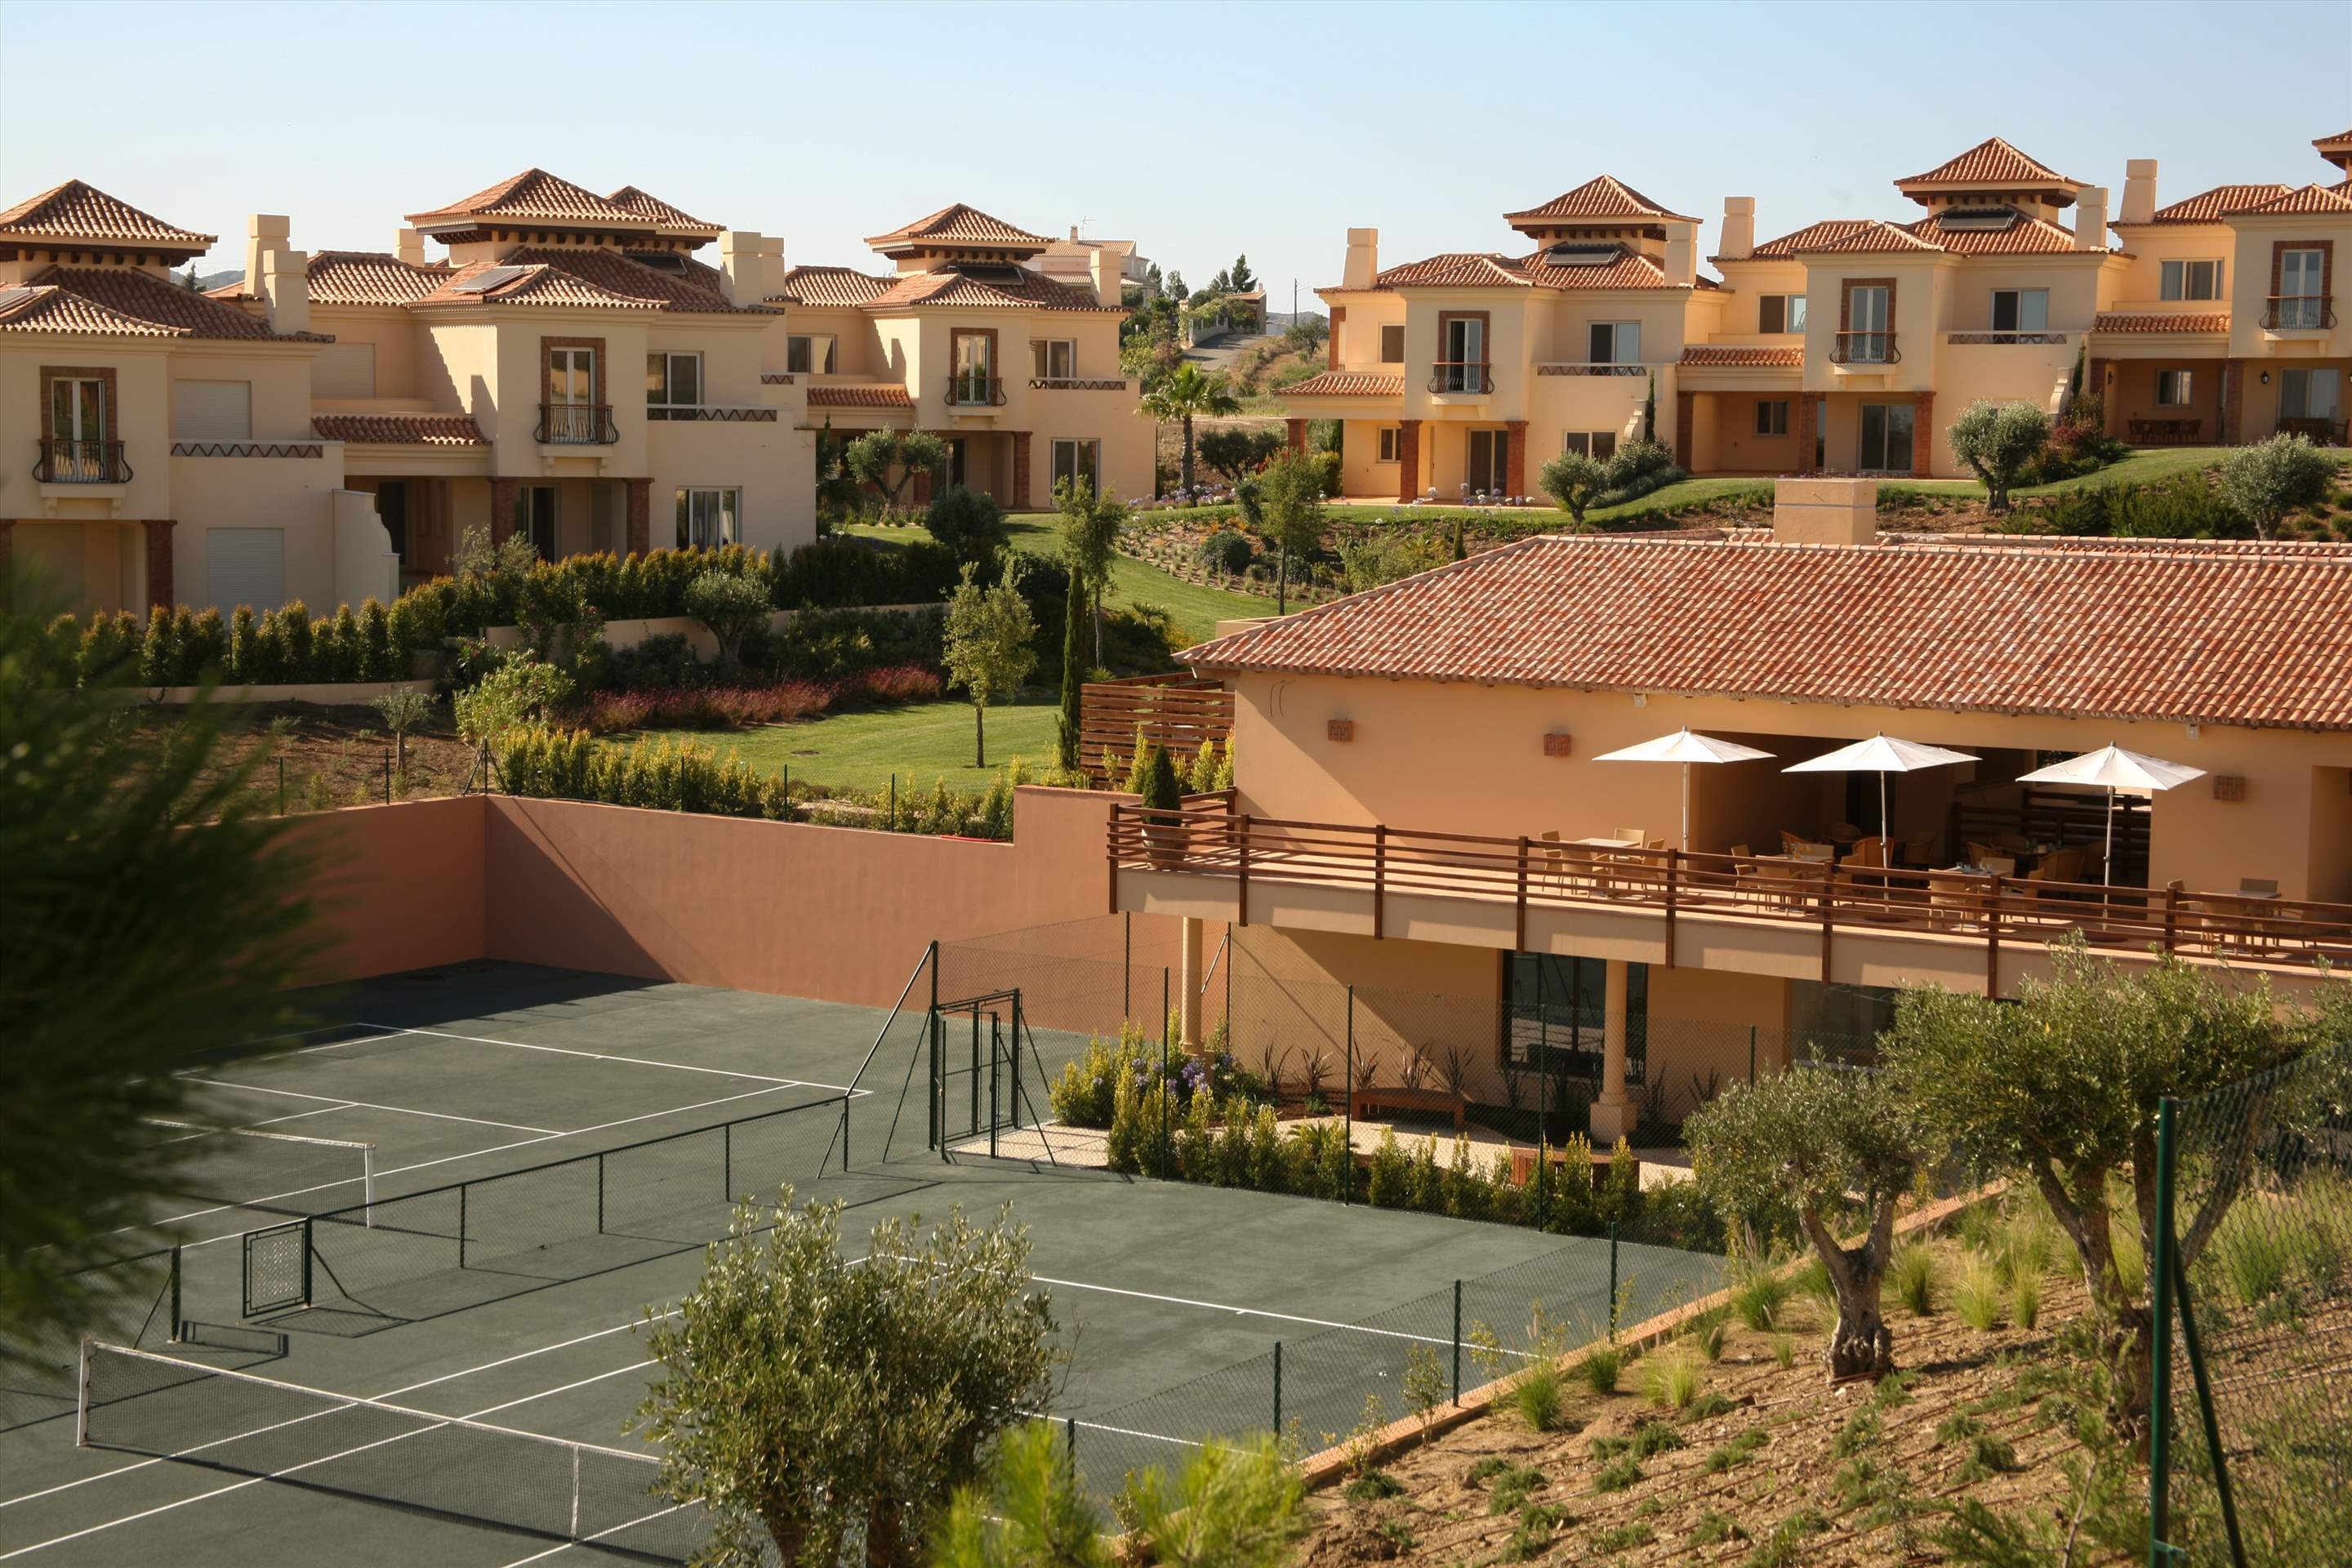 Monte Rei One Bedroom Linked Villa, 1 bedroom villa in Monte Rei Country Club, Algarve Photo #14